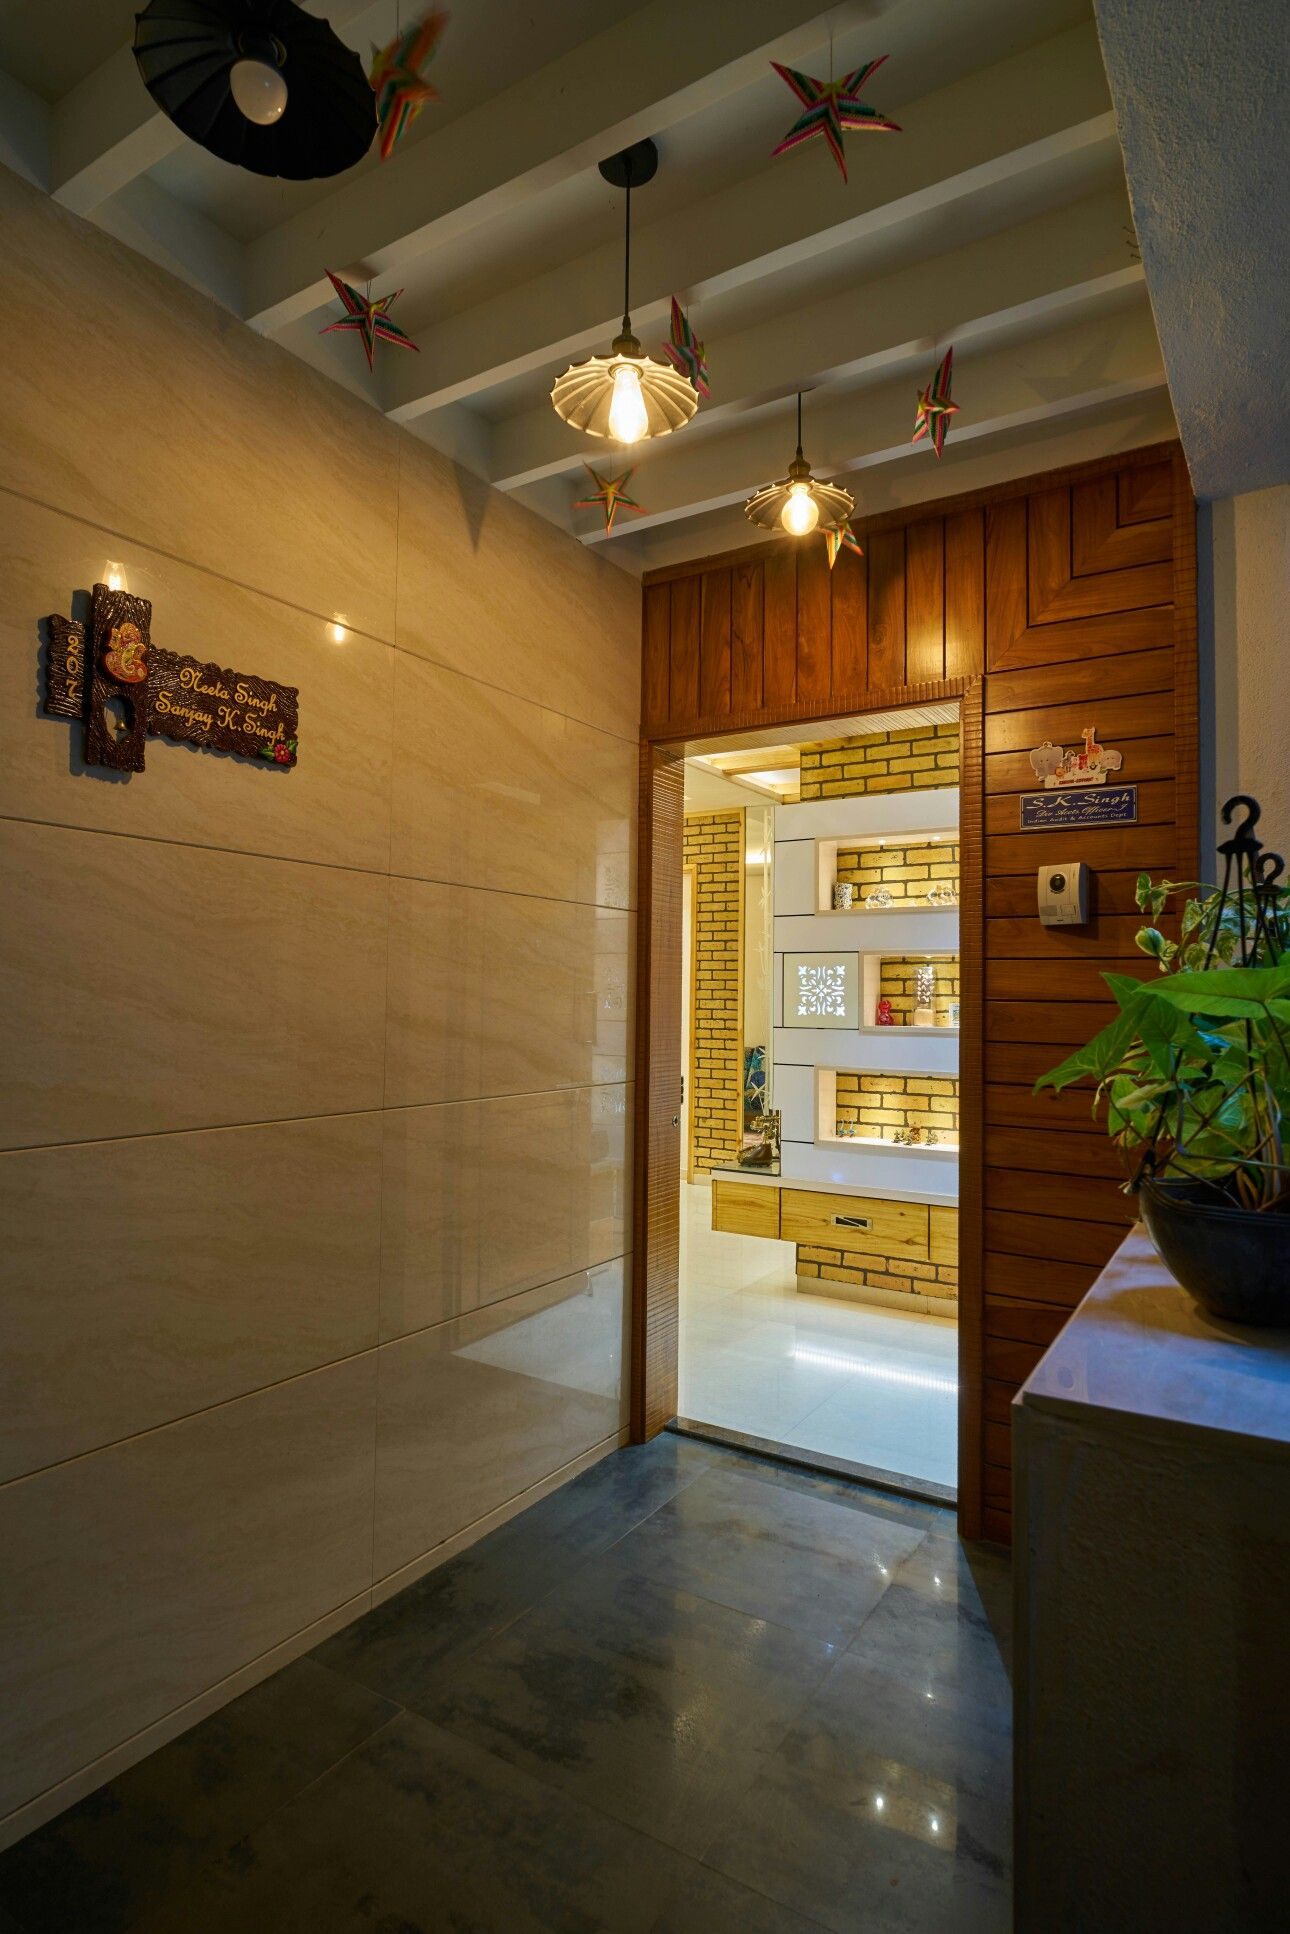 Interiordesign residence duplexflat flat kolhapur archdaily also pin by be cool on plan  interior pinterest house entrance rh